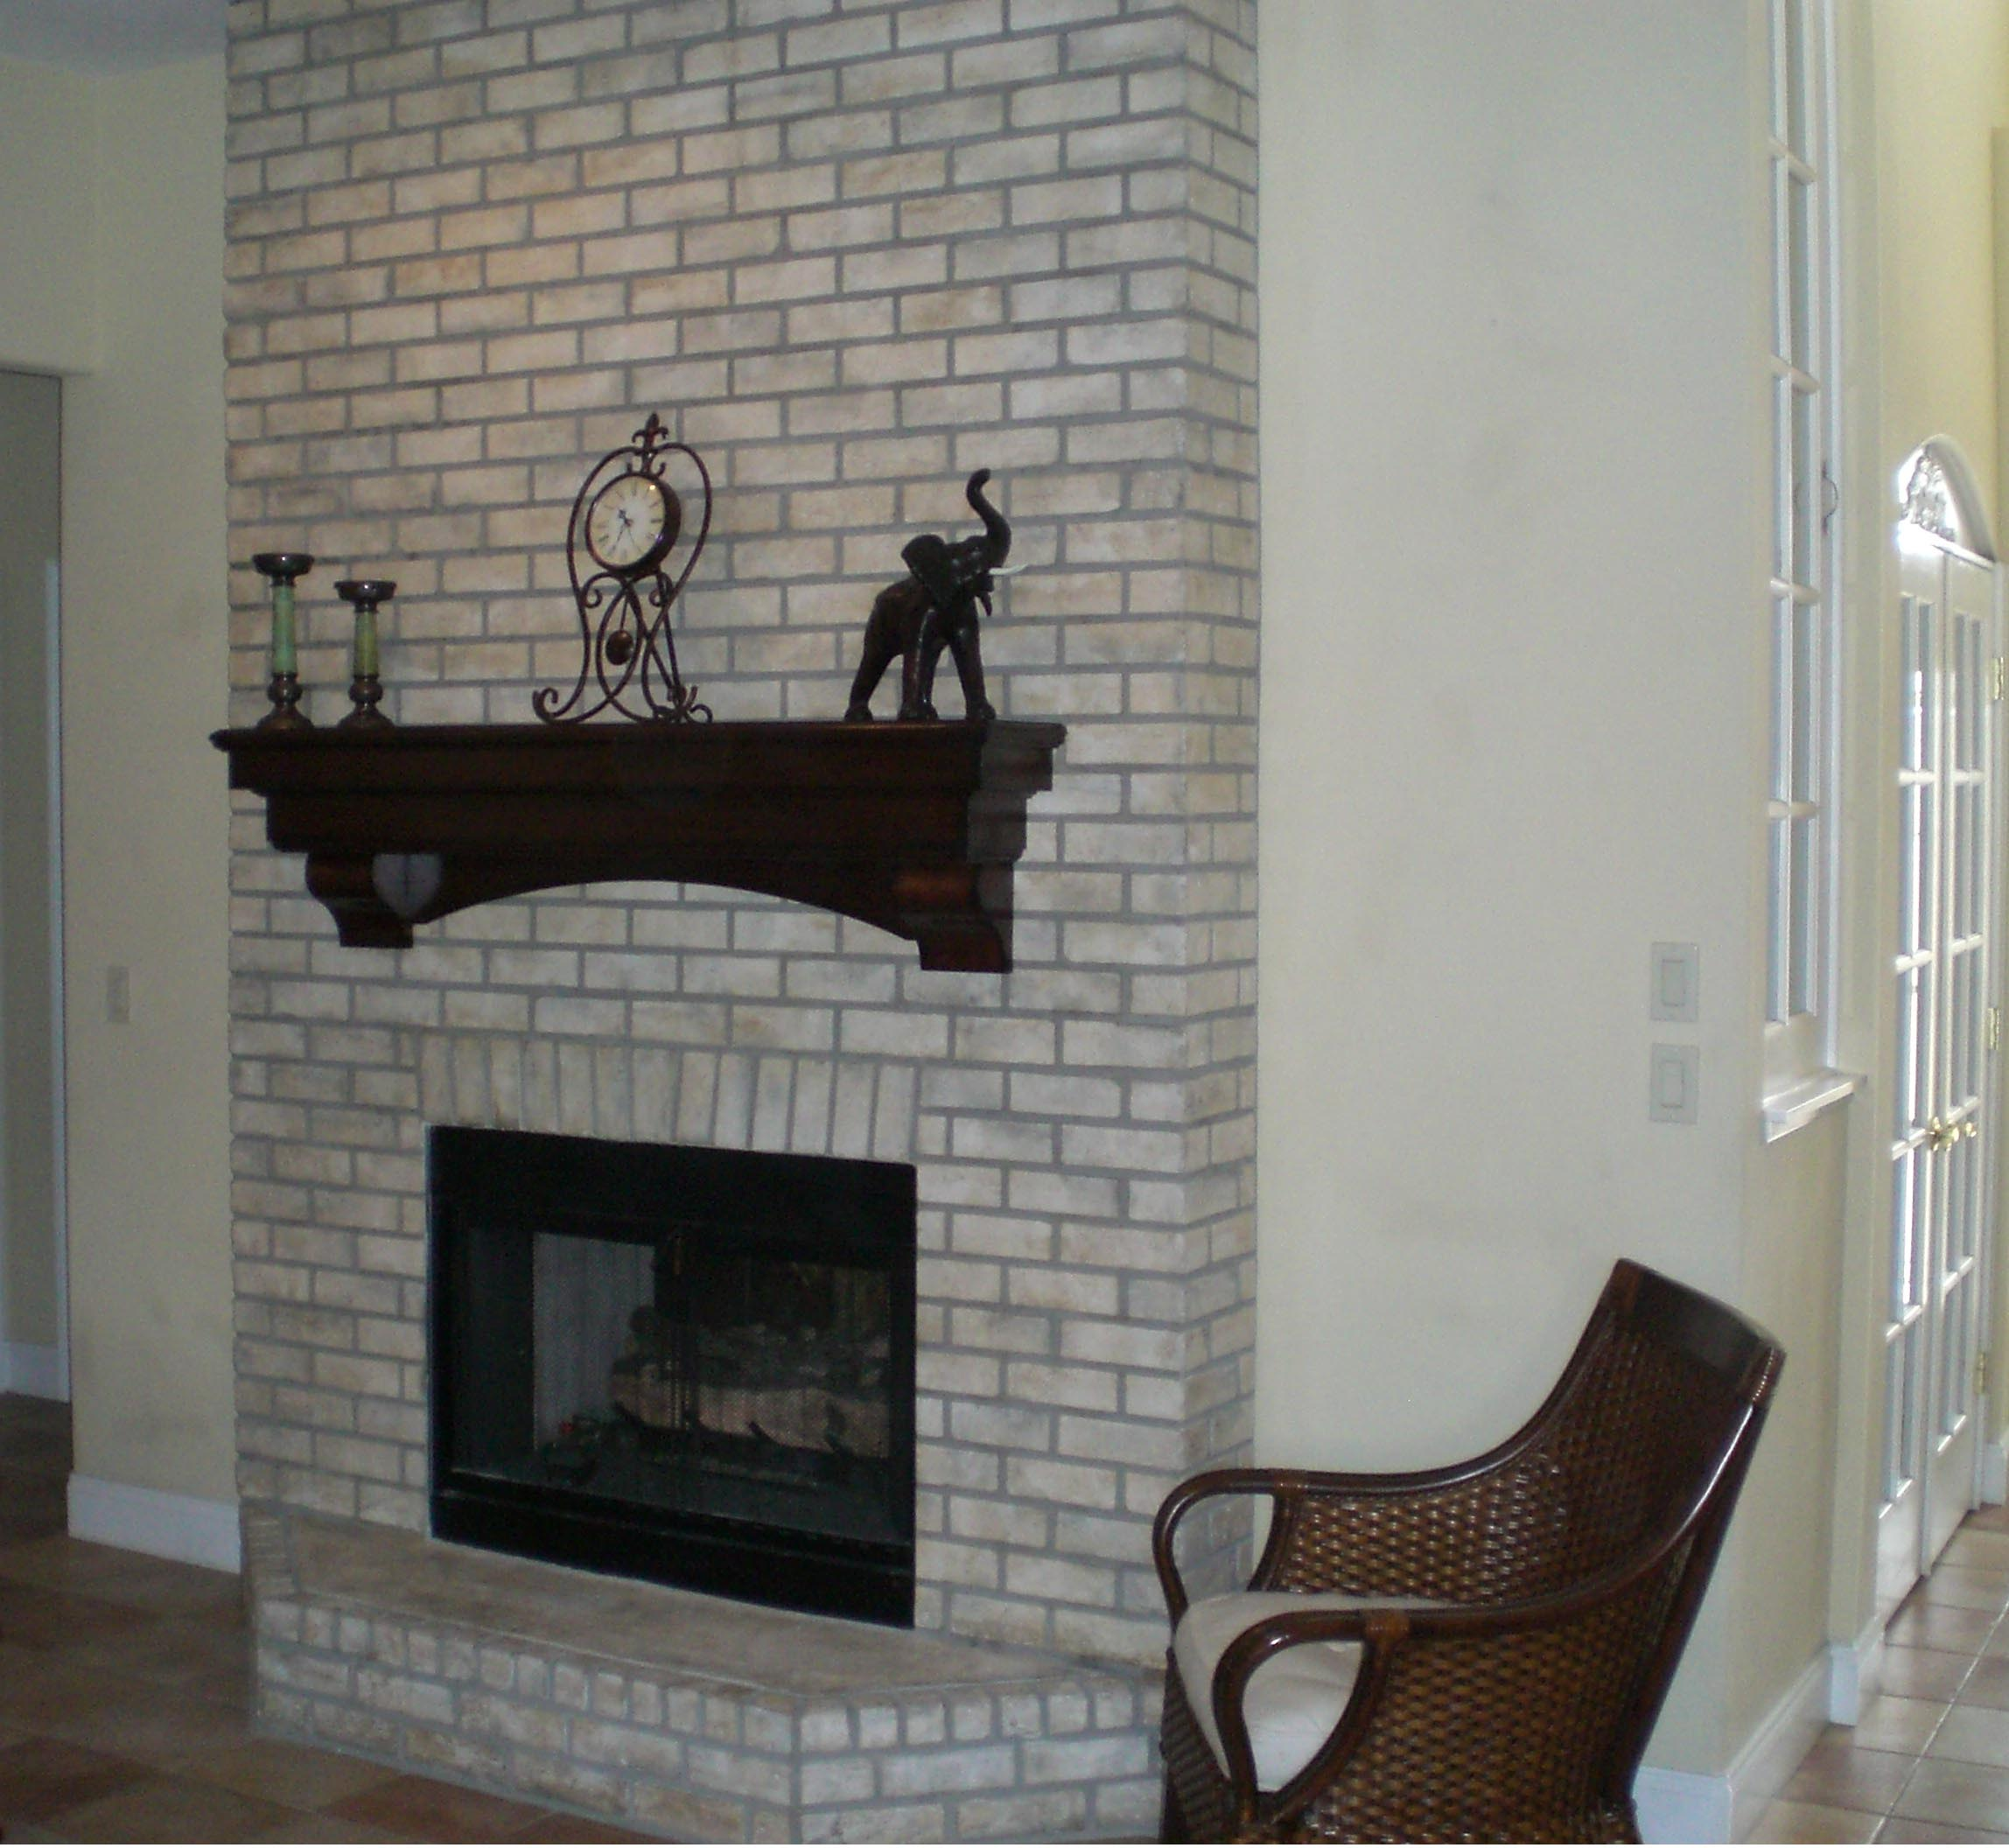 Brick wall fireplace makeover fireplace designs Brick fireplace wall decorating ideas